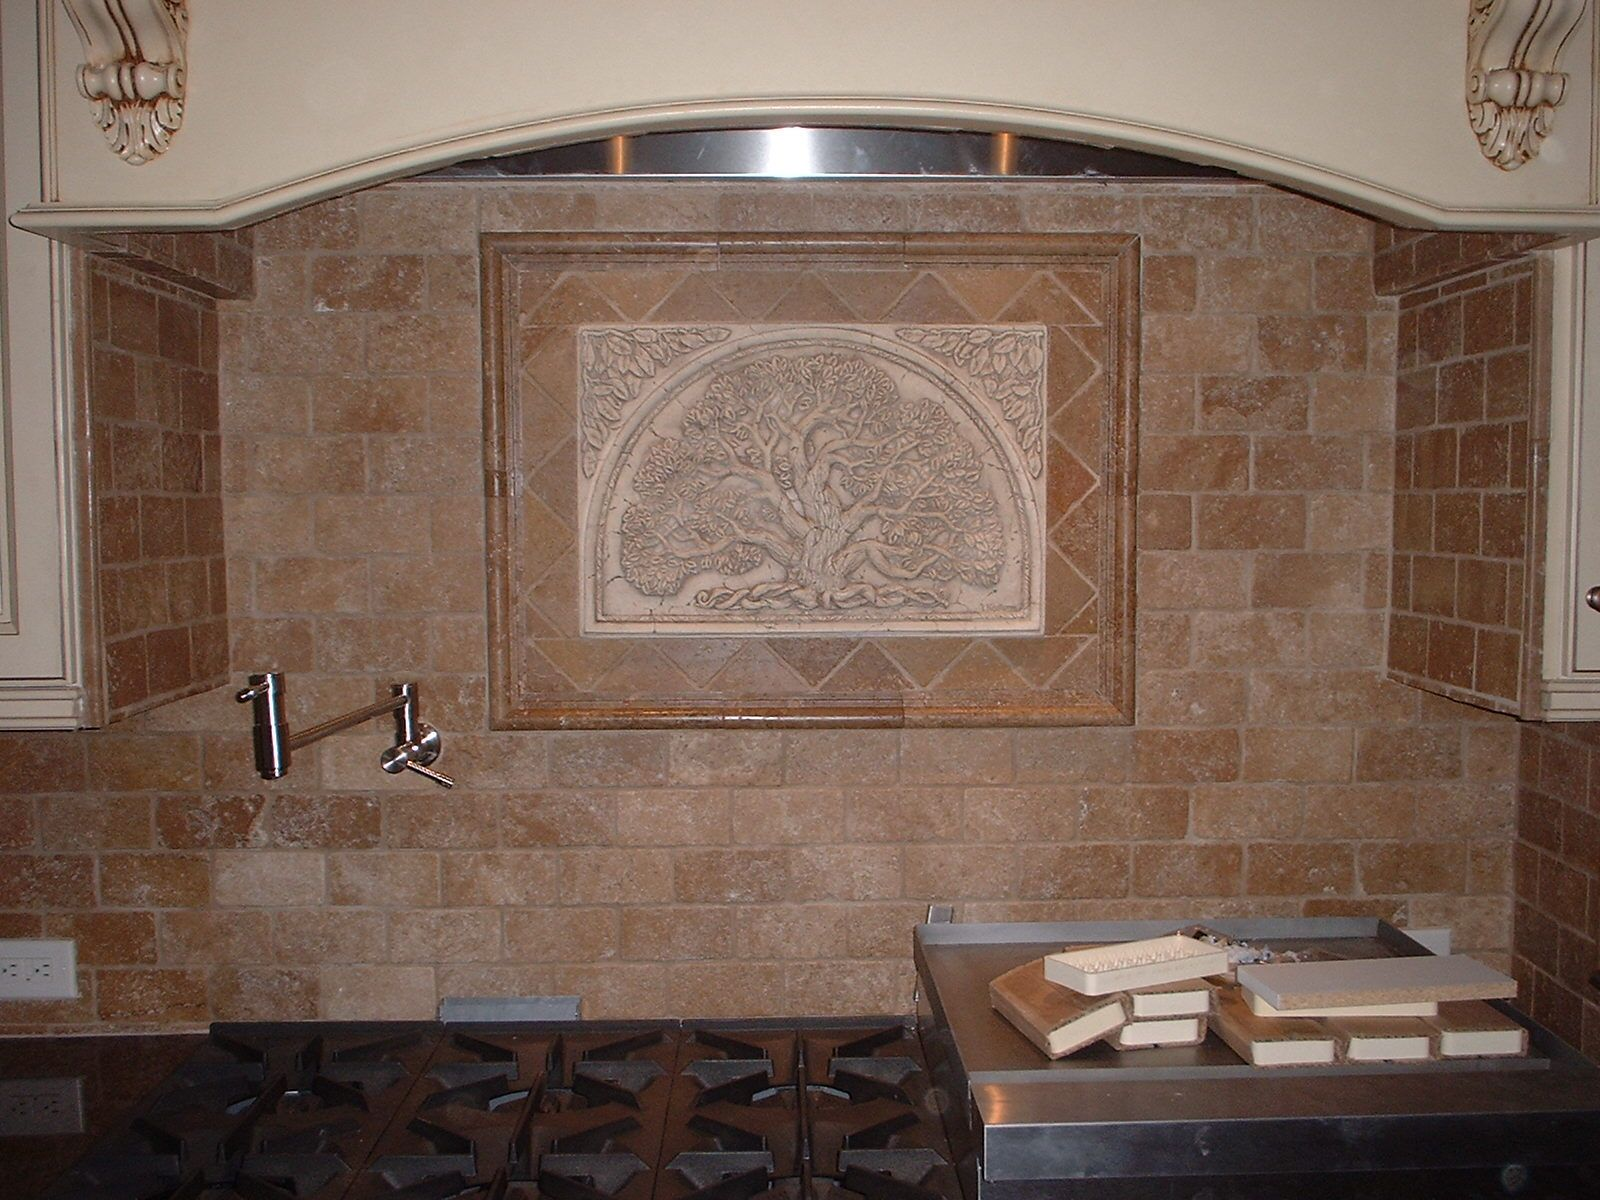 wallpaper kitchen backsplash ideas | backsplash designs pictures ...